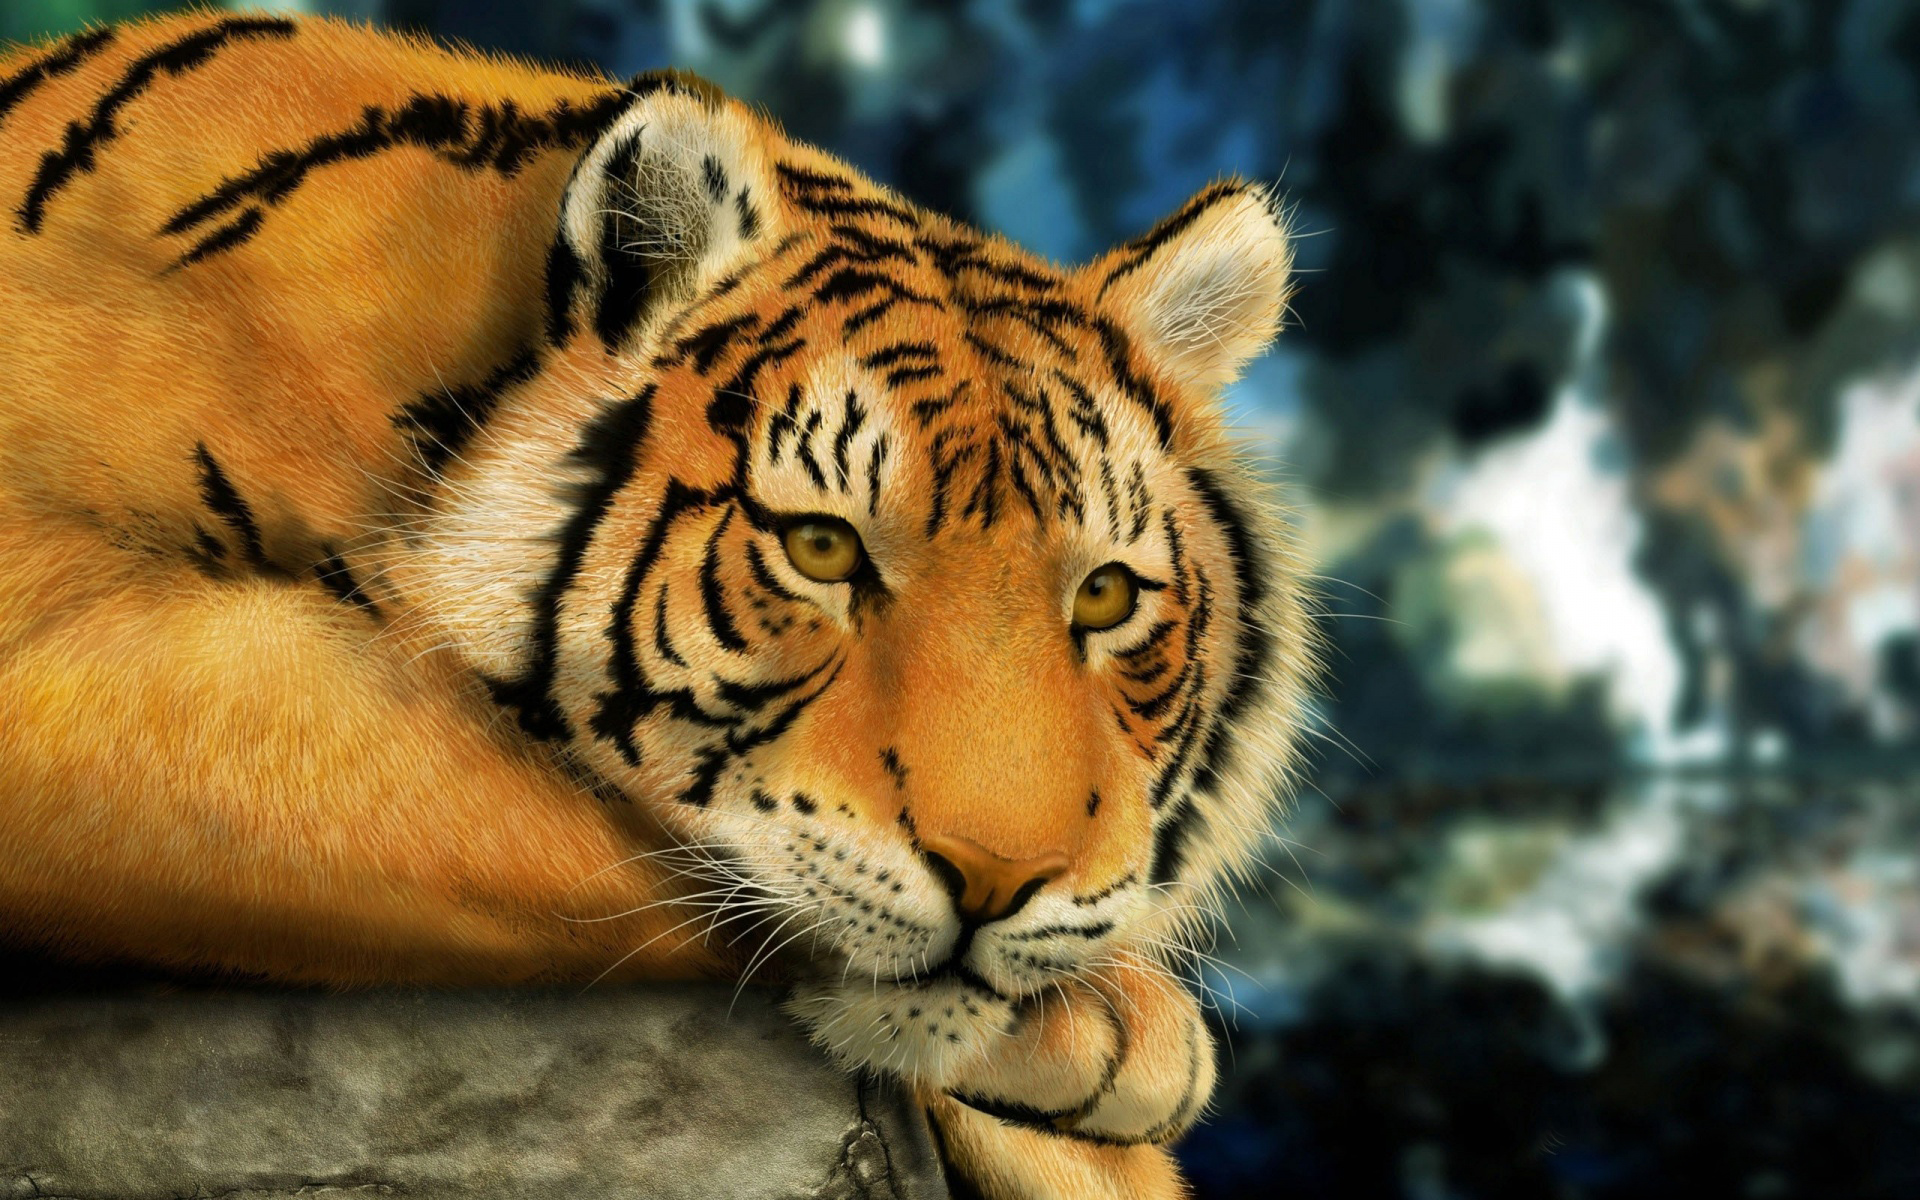 Tiger Painting computer desktop wallpapers pictures images 1920x1200